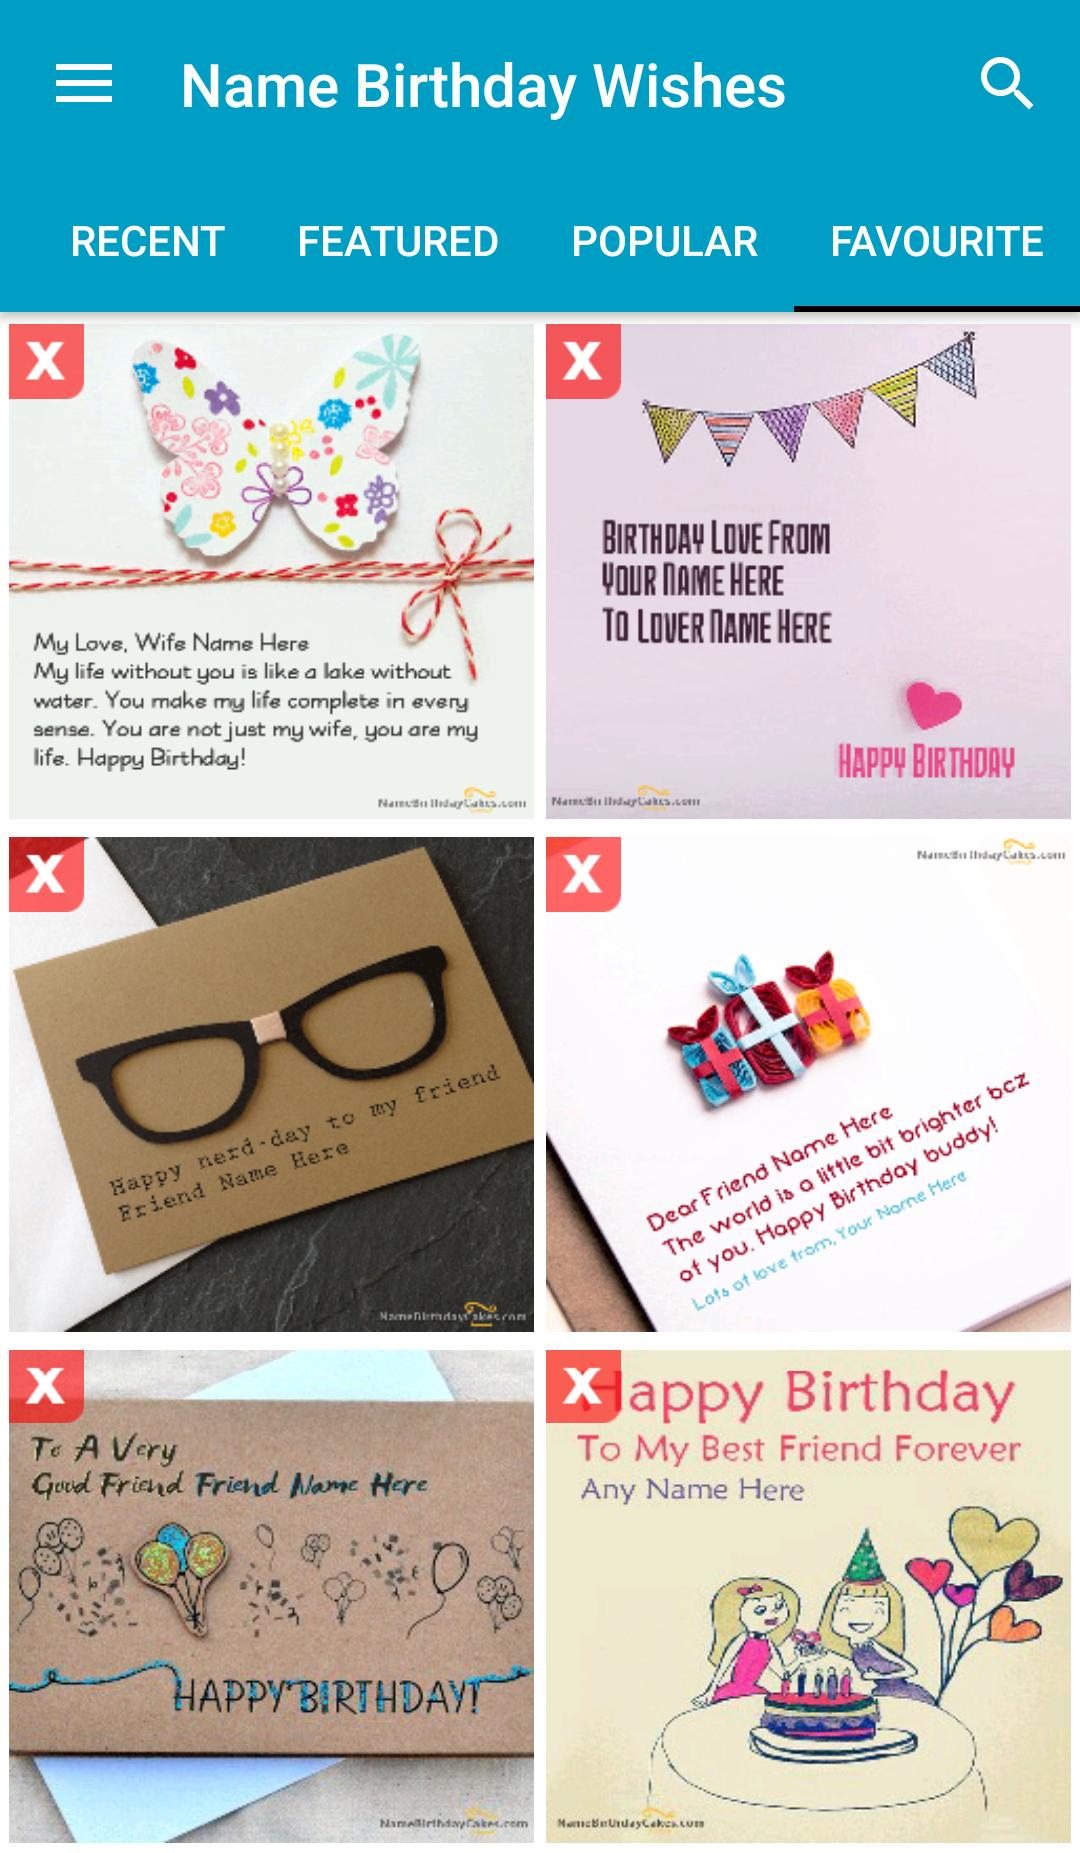 Name Birthday Wishes For Android Apk Download